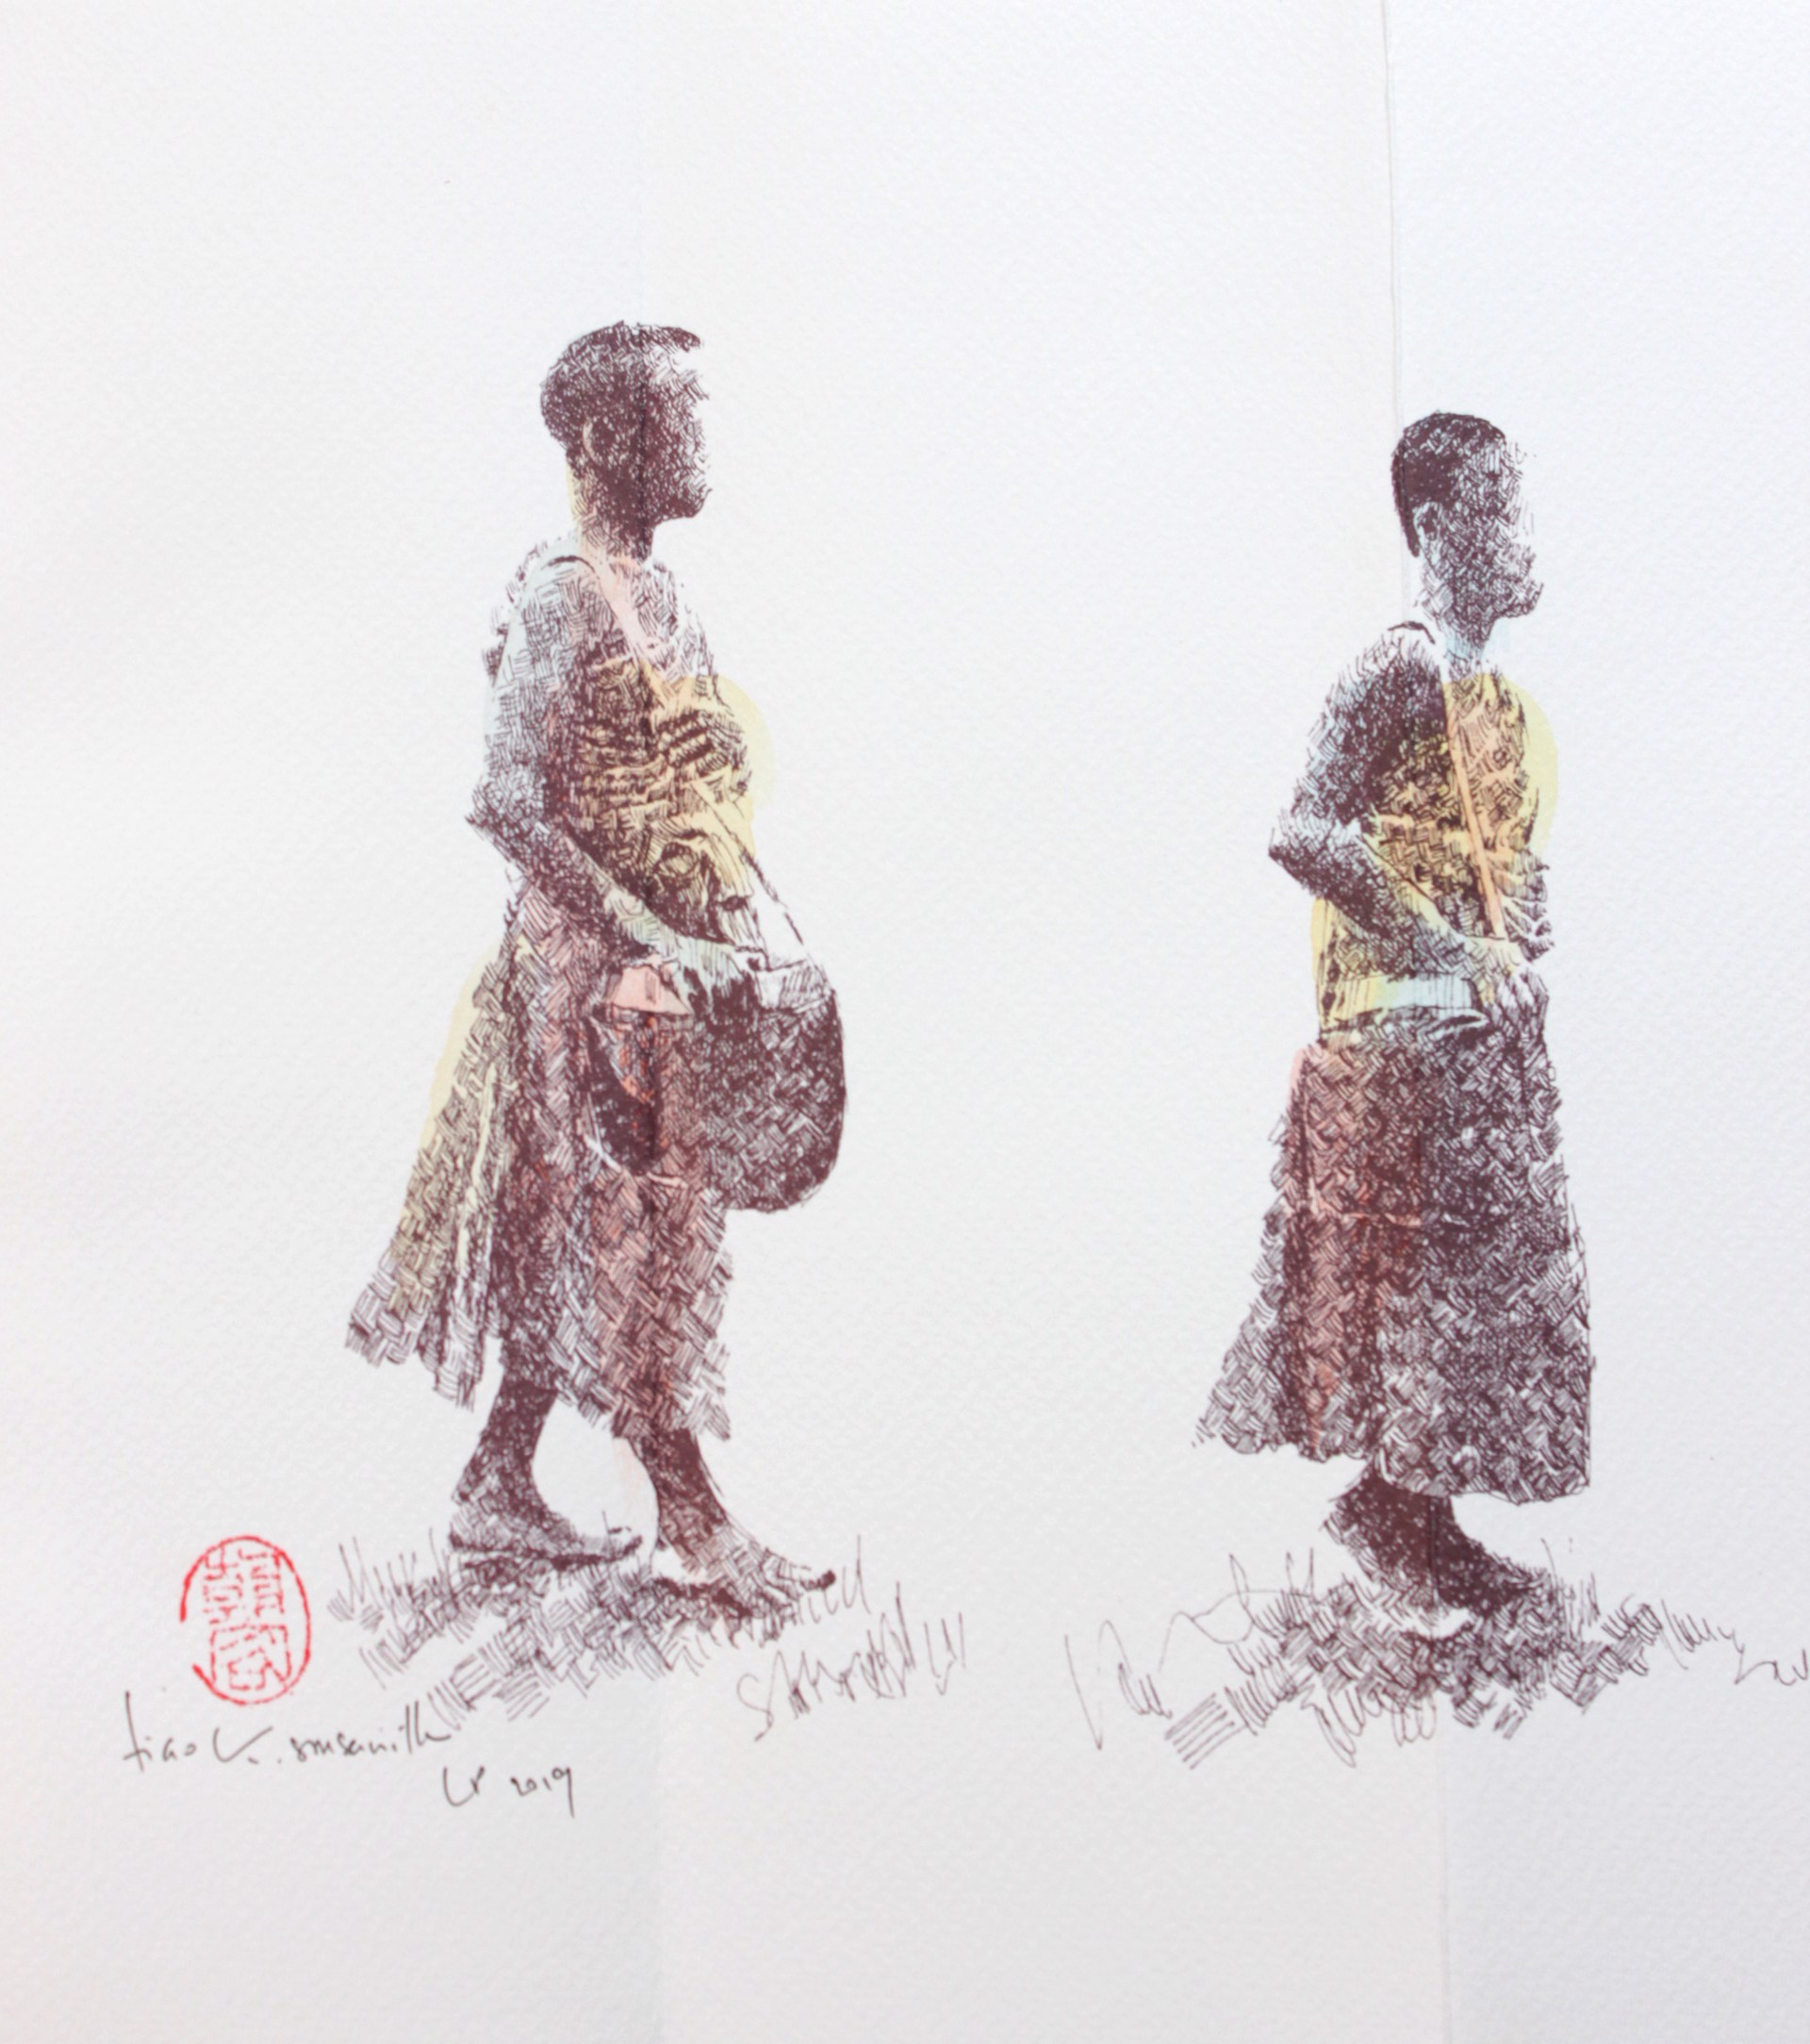 Alms Giving Procession: Print Series I by Tiao Nithakhong Somsanith